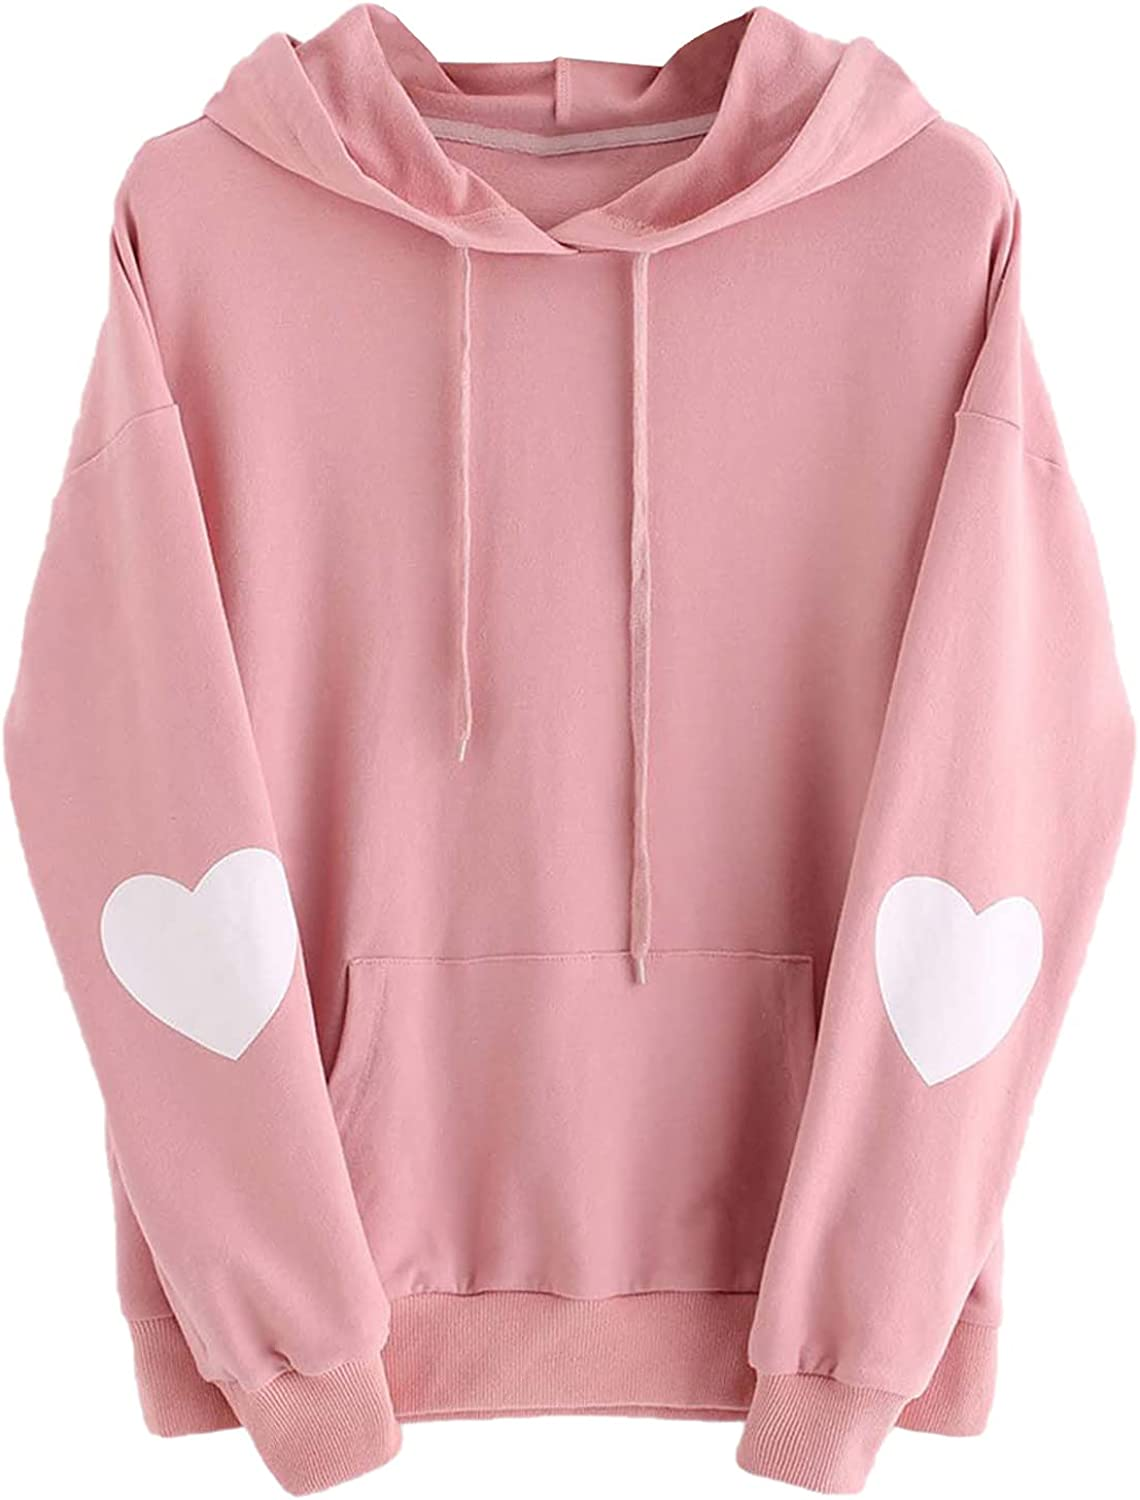 Kanzd Cute Hoodies for Girls Women Casual Long Sleeve Kawaii Love Print Fashion Drawstring Pullover Loose Fit Blouse